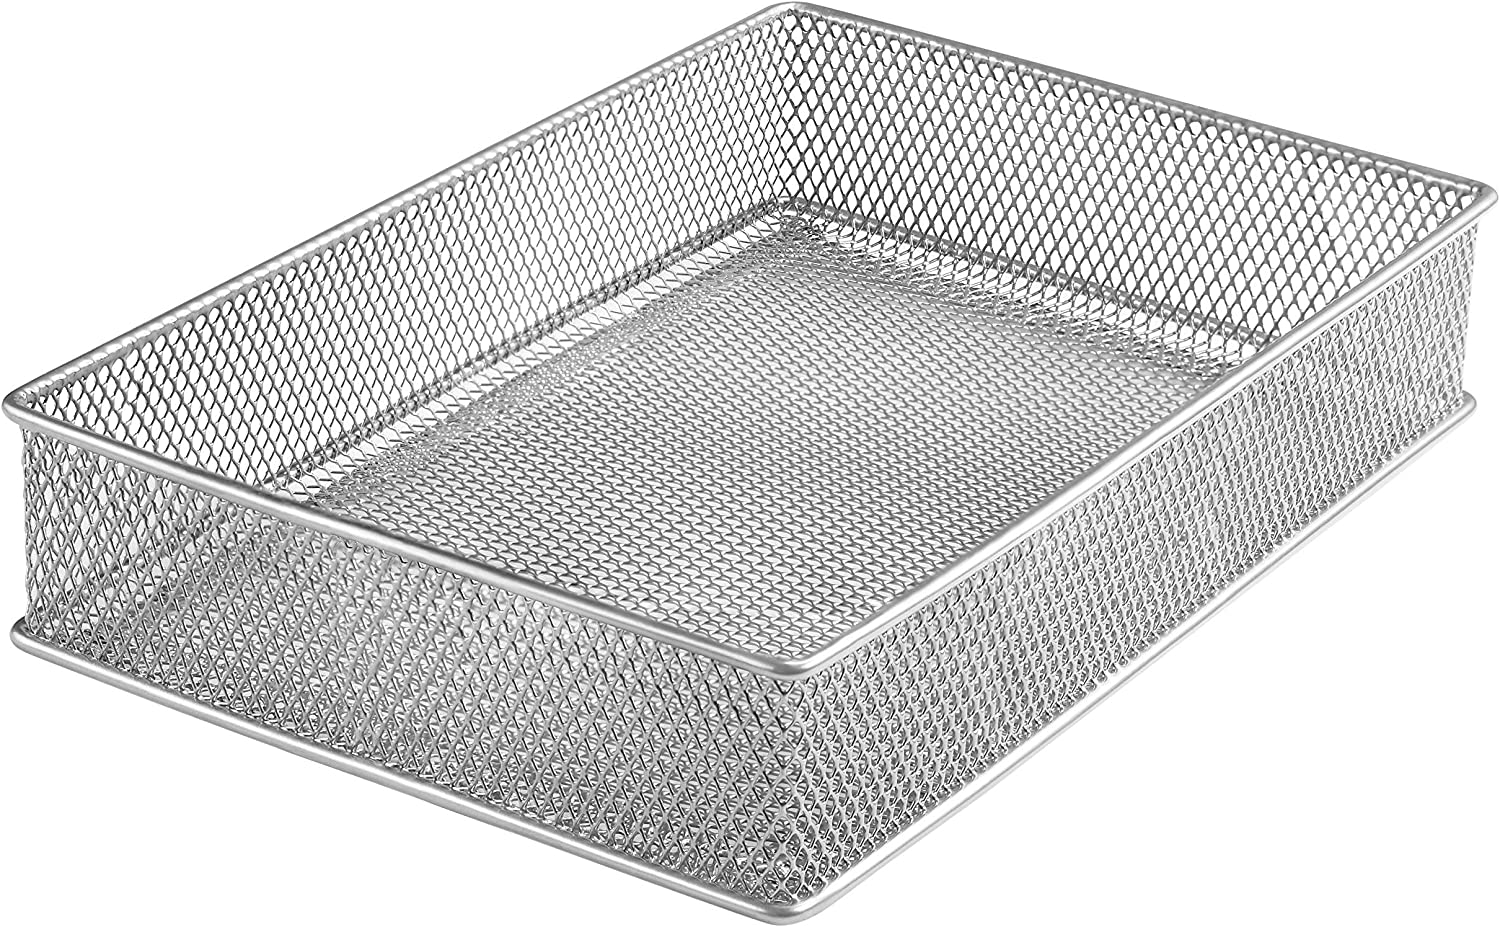 YBM HOME Silver Mesh Drawer Cabinet and or Shelf Organizer Bins, School Supply Holder Office Desktop Organizer Basket 1590s (1, 6x9x2 Inch)